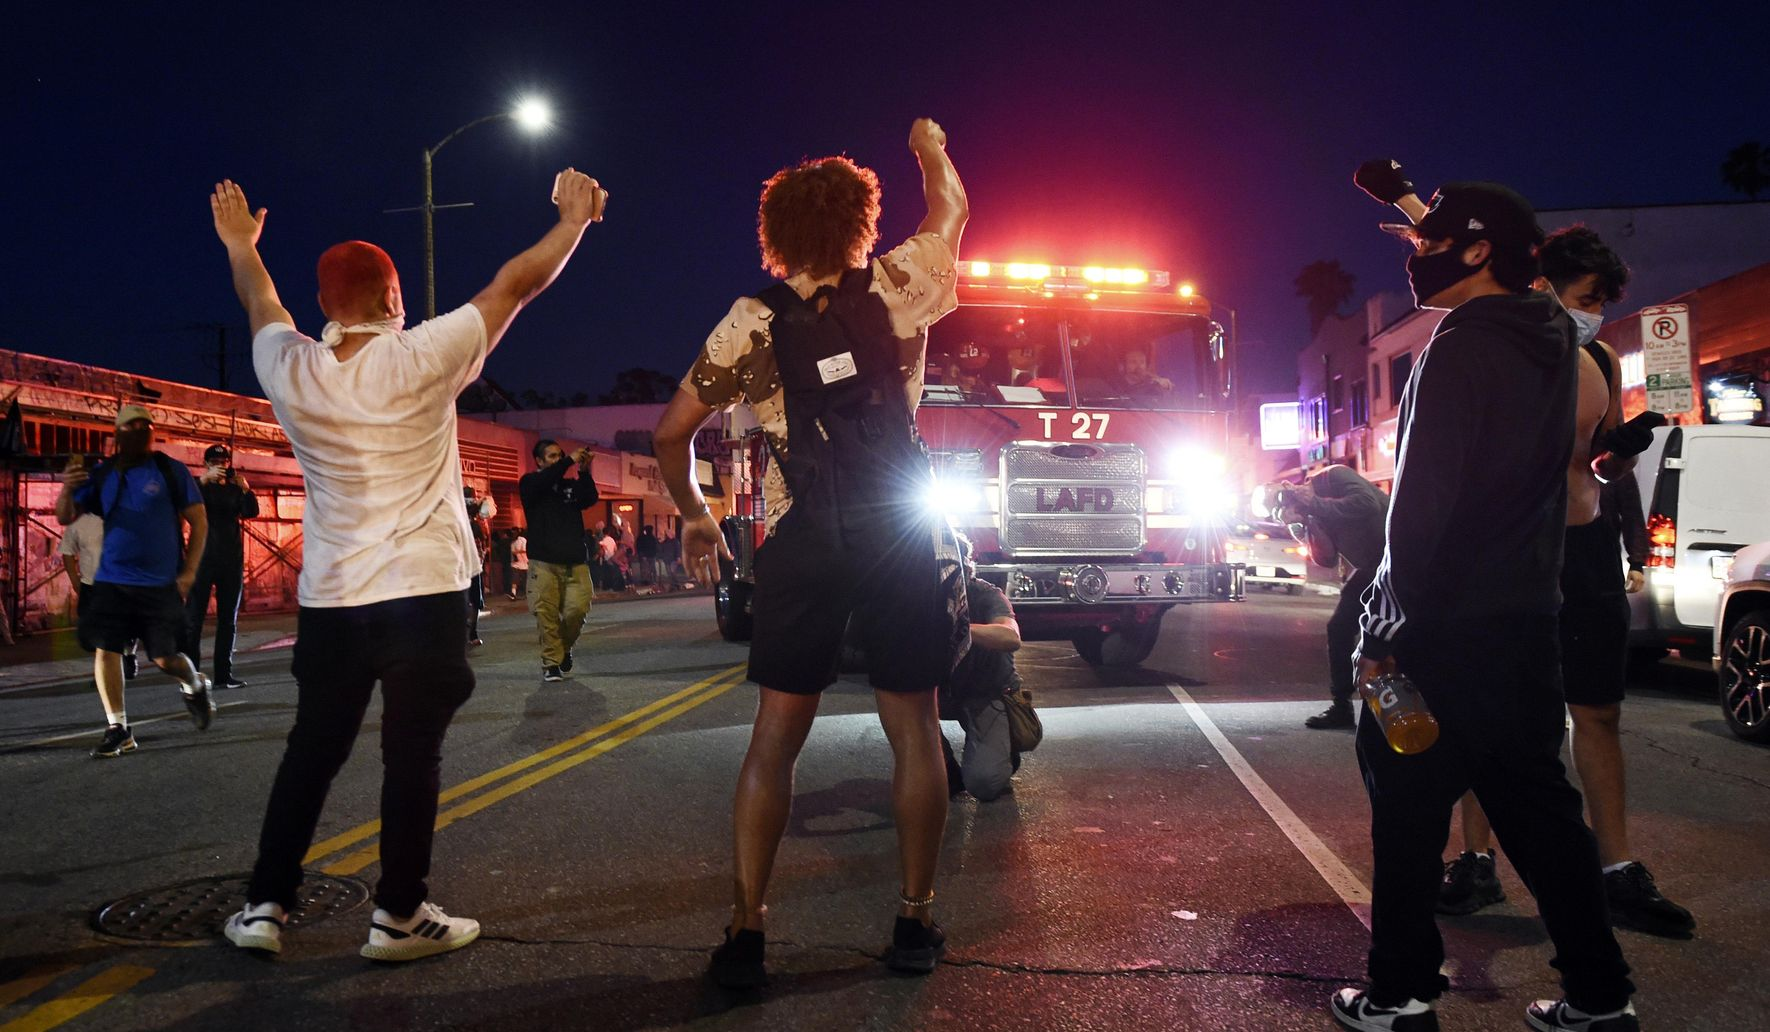 Image of article 'We're sick of it': Anger over police killings shatters US'